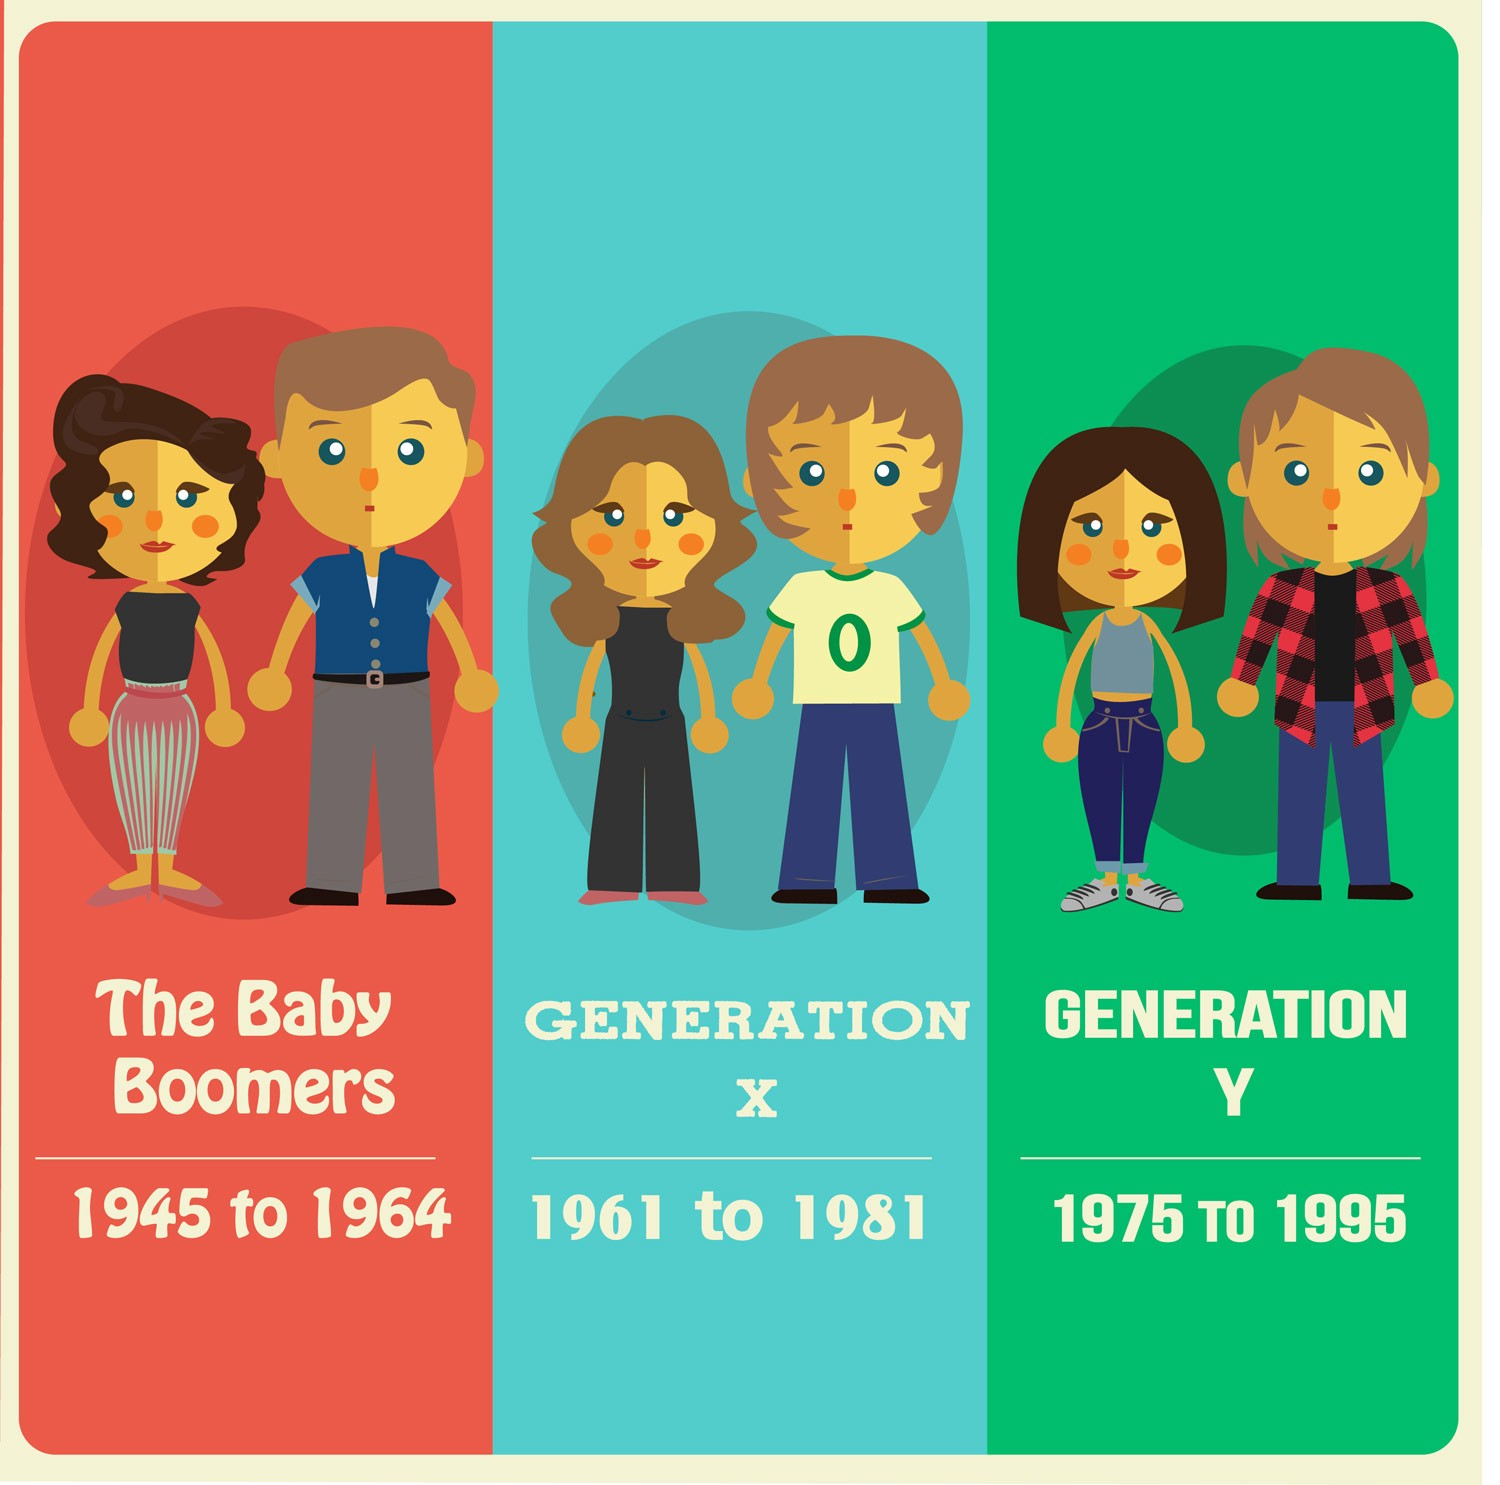 baby boomers generation x and generation y in the job market